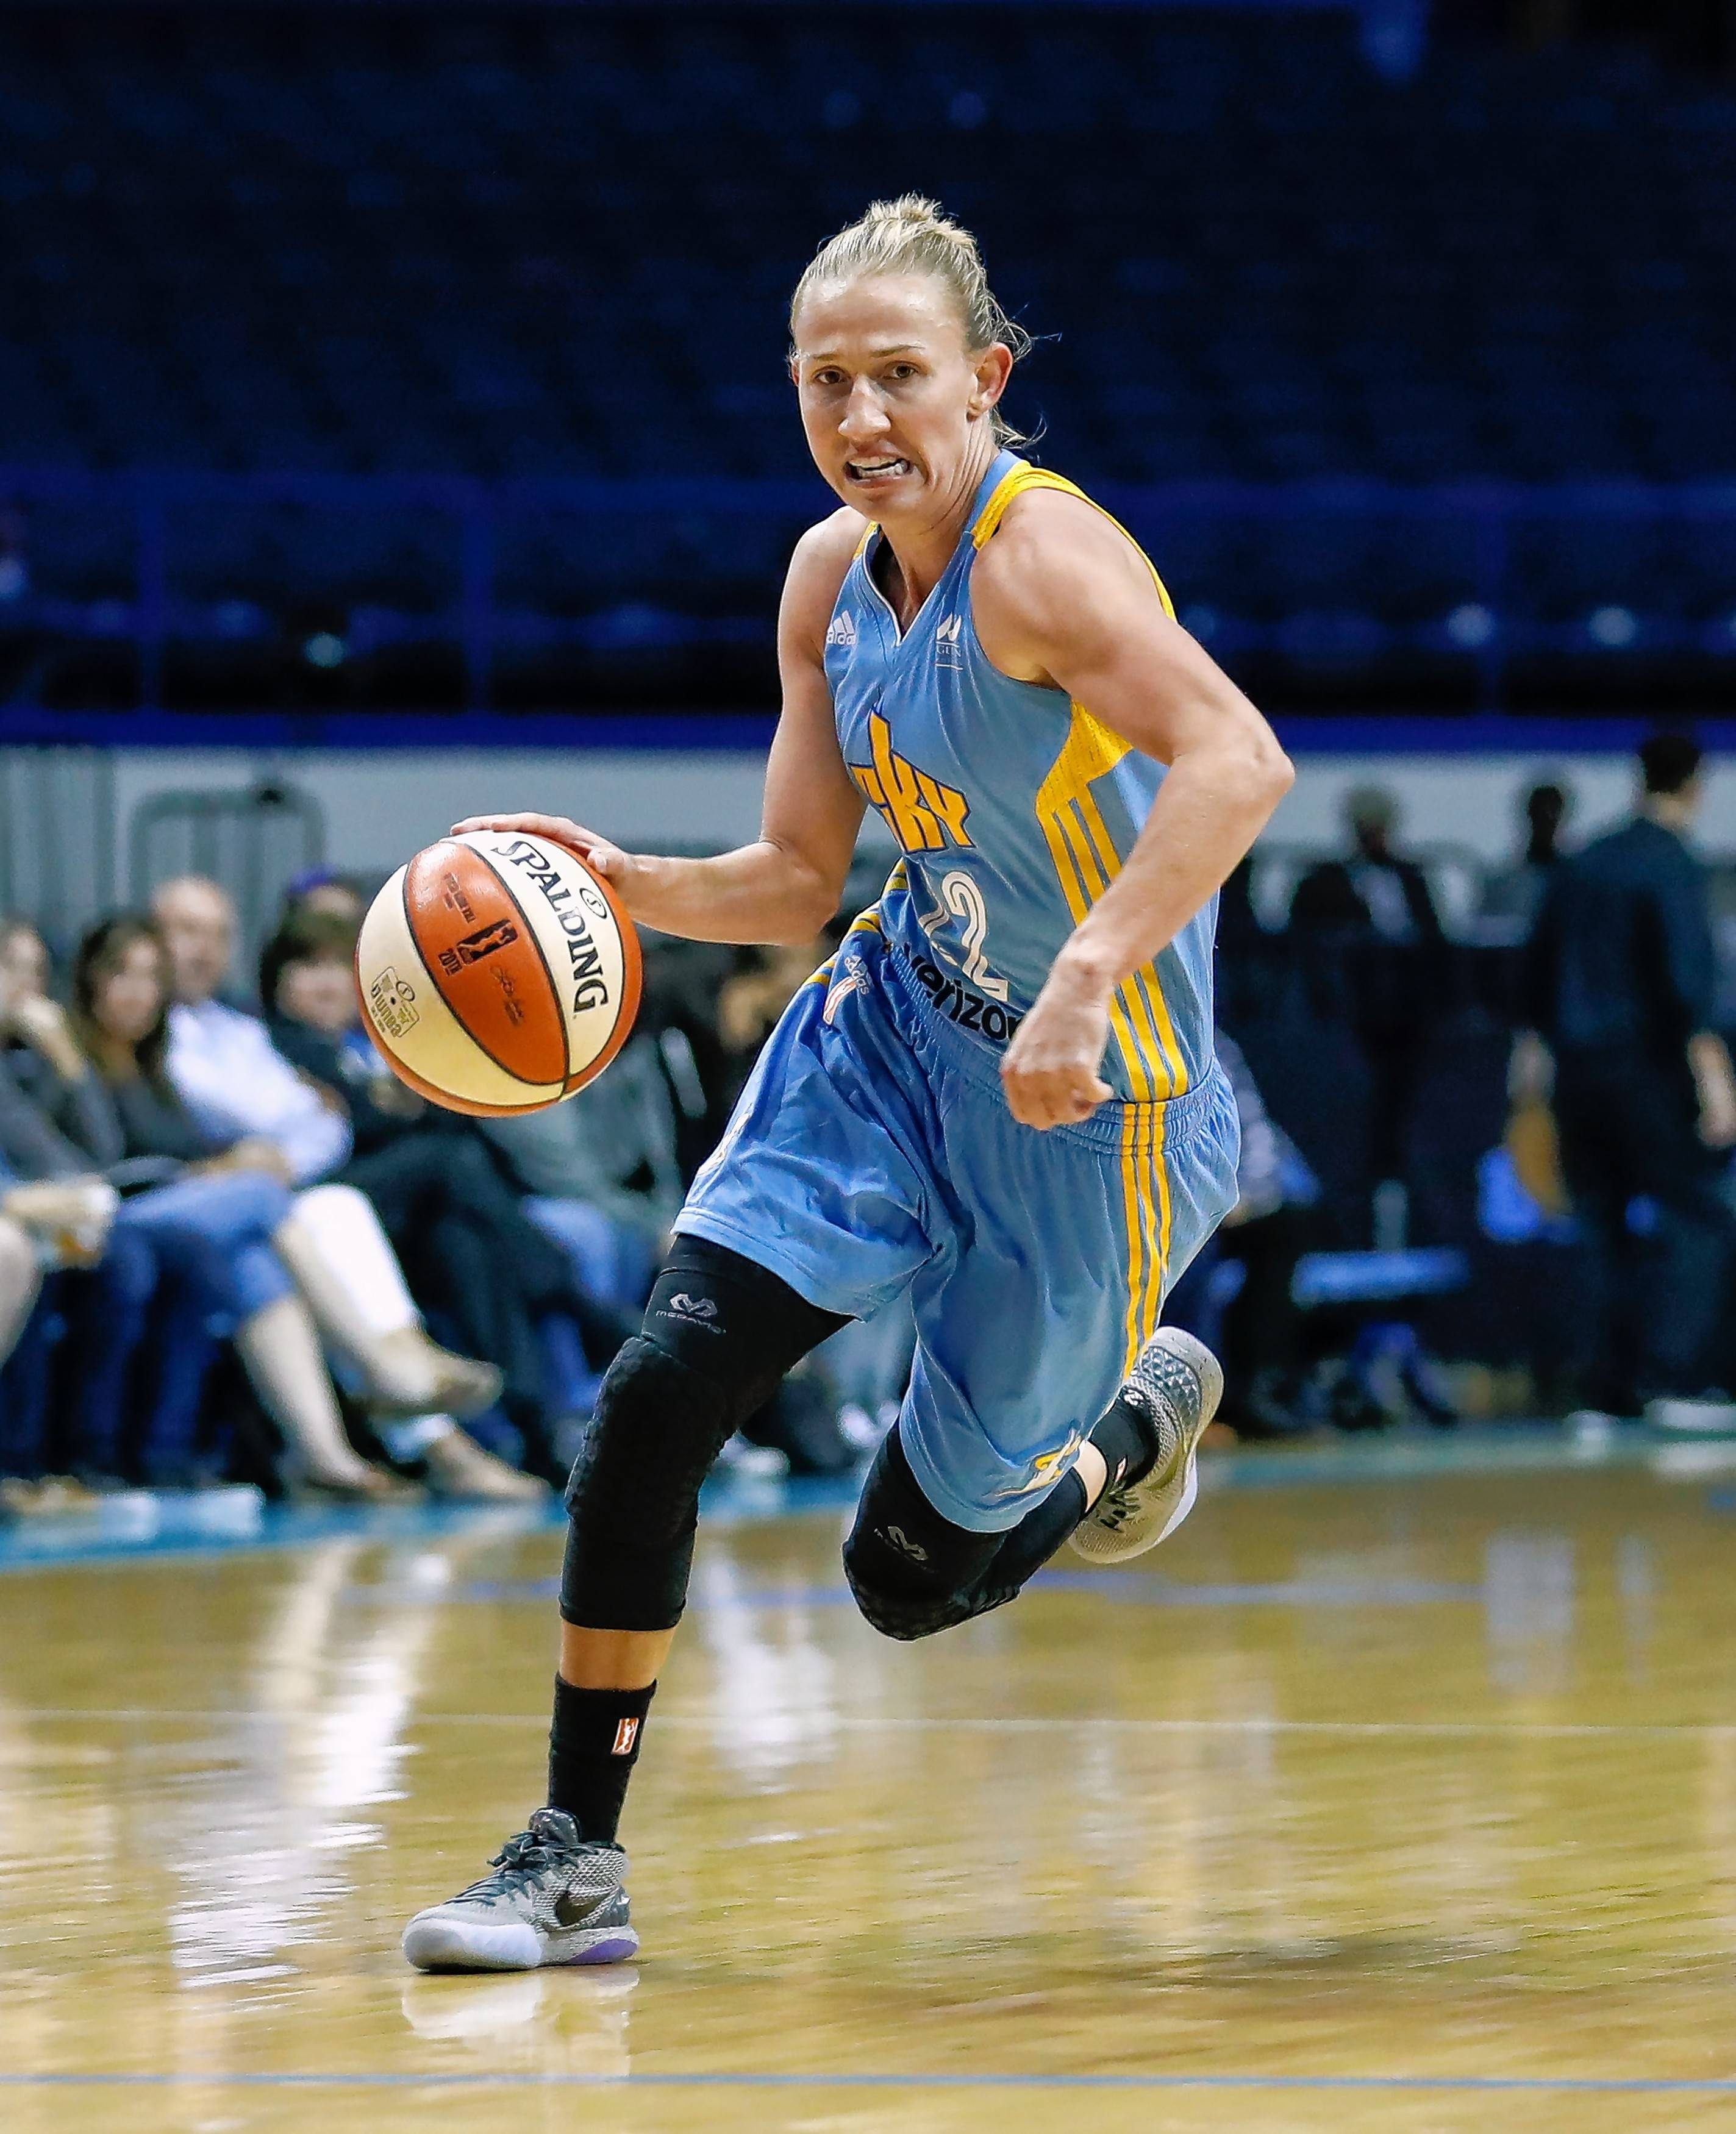 Chicago Sky guard Courtney Vandersloot is leading the WNBA in assists this season.